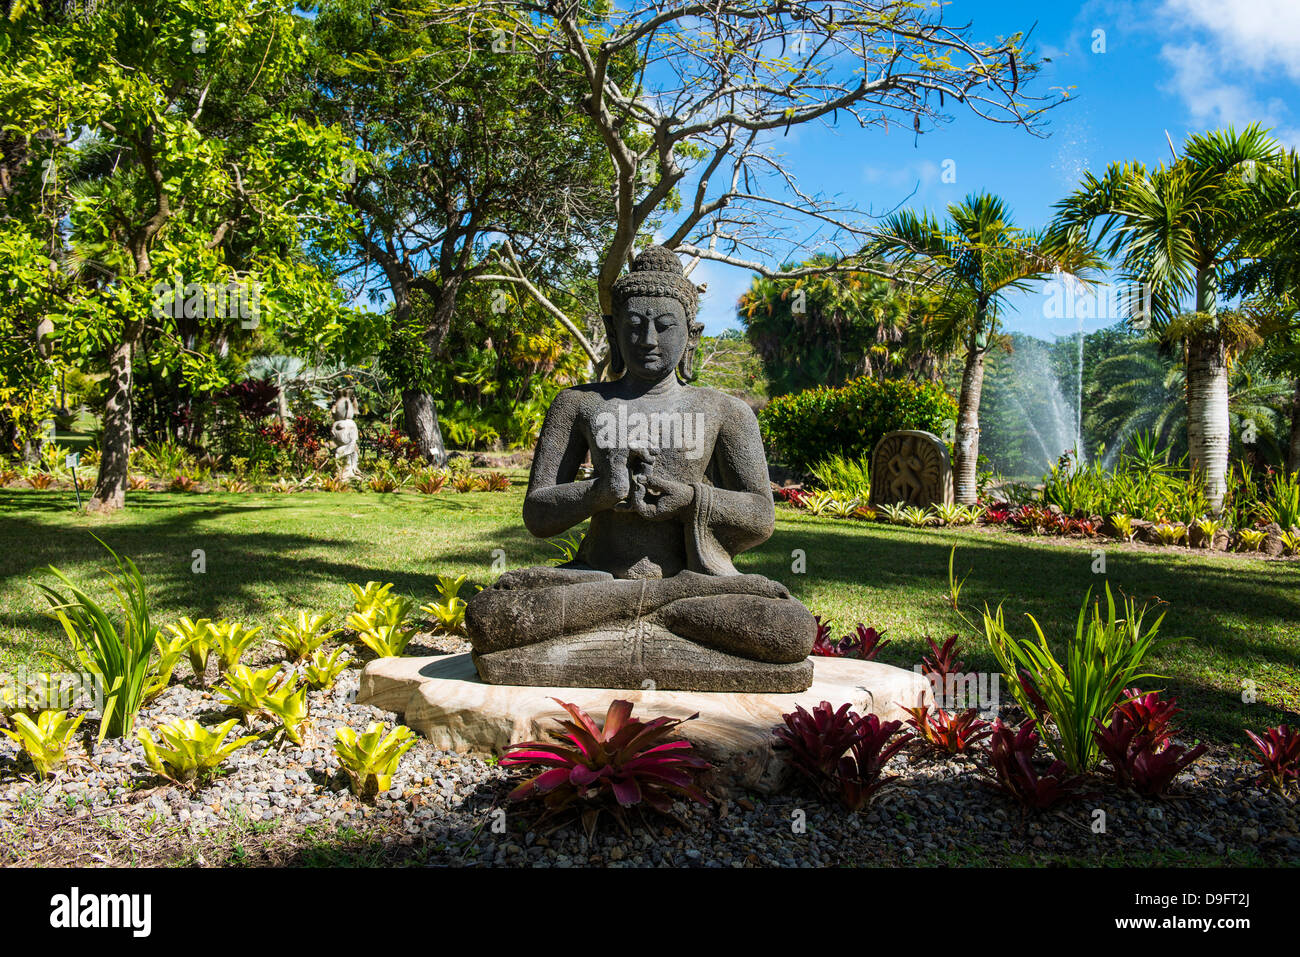 Buddhist statues in the Botanical gardens in Nevis island, St. Kitts and Nevis, Caribbean - Stock Image